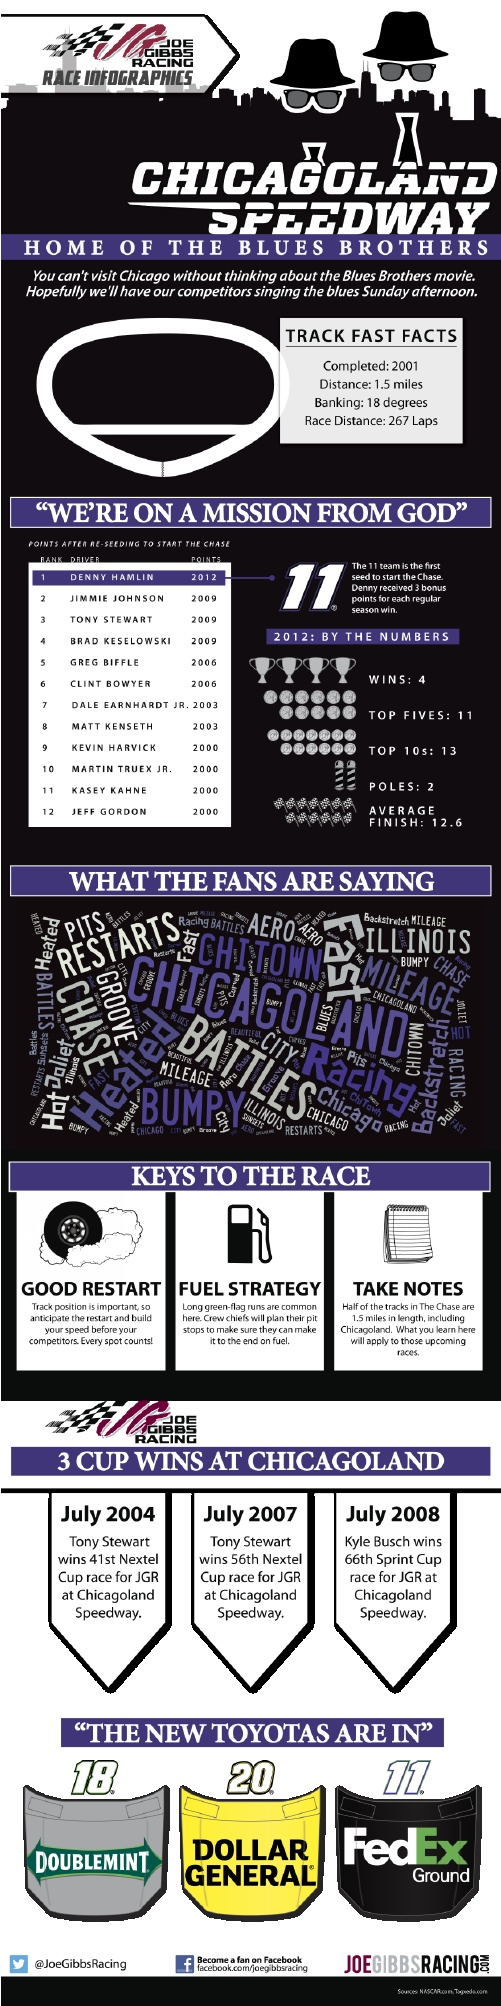 Chicago = Blues Brothers. Check out our specially-themed Infographic for this week's #NASCAR race!